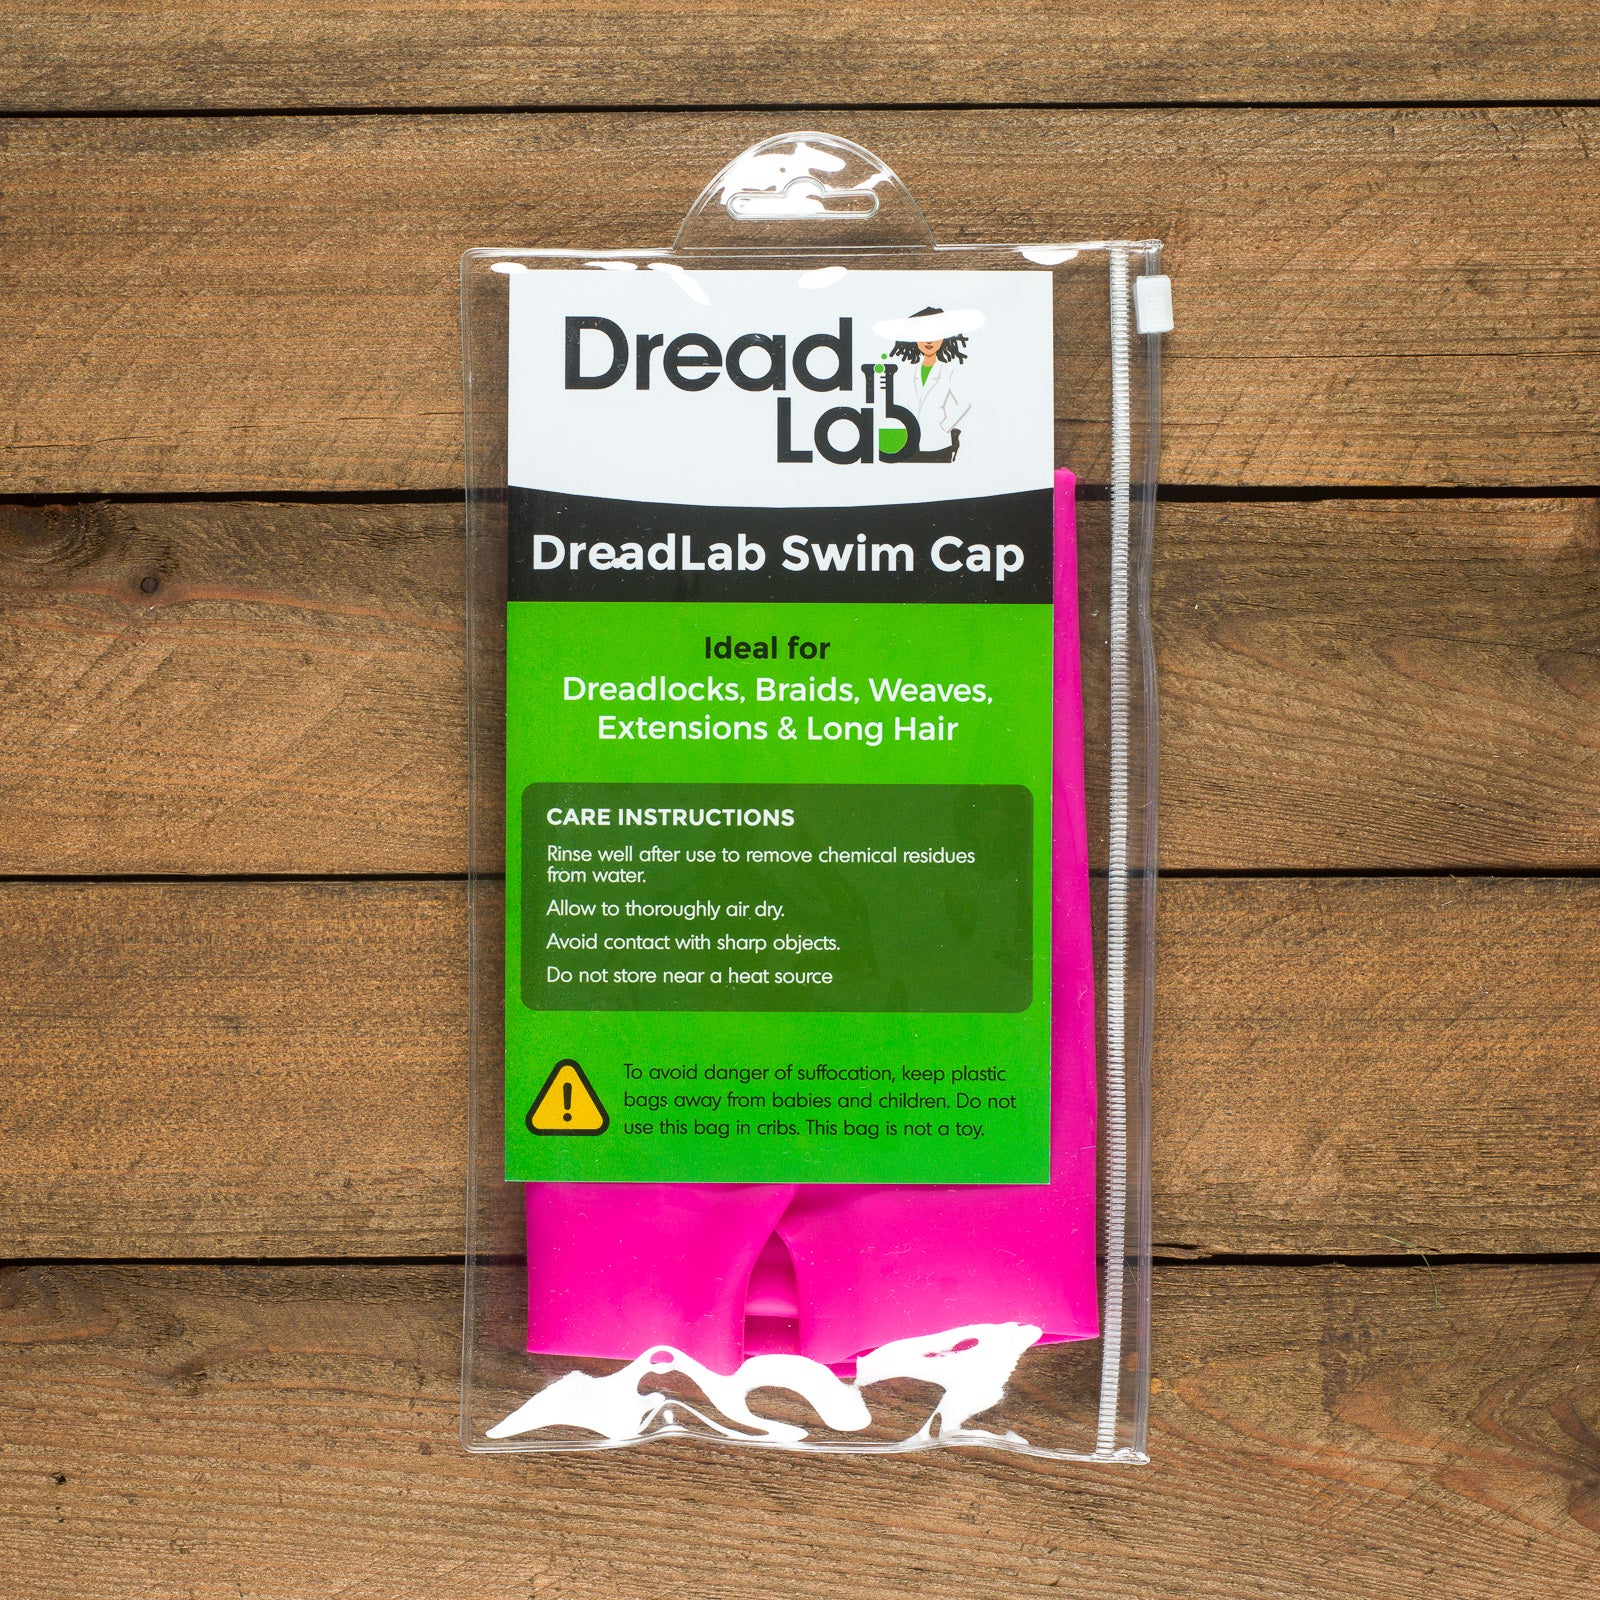 DreadLab - Extra Large Swim Cap (Shocking Pink - Plain) Dreadlocks/Extensions